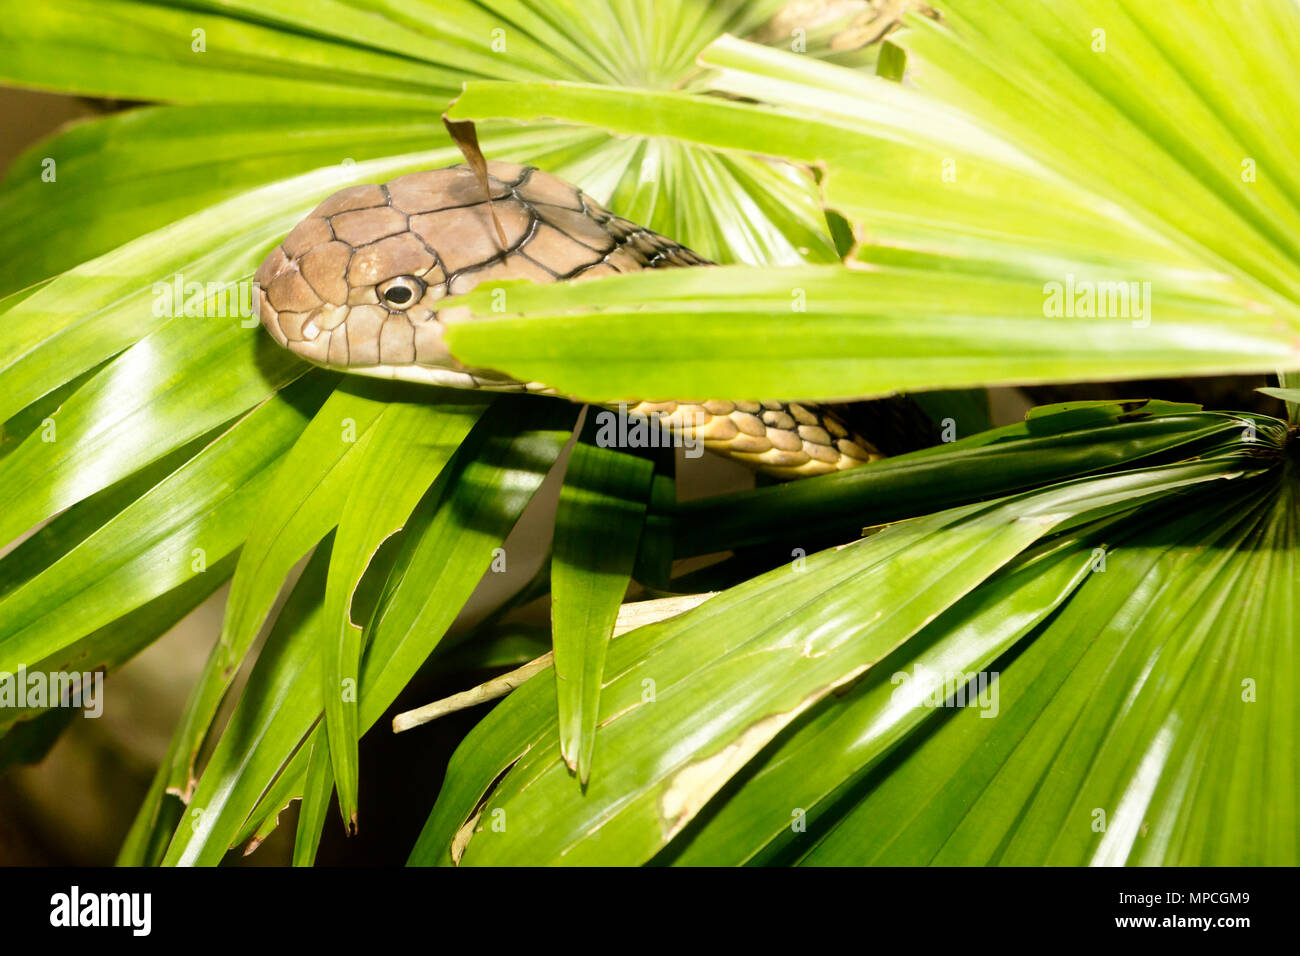 King Cobra hunts through the vegetation with drop of poison on his lips - Stock Image